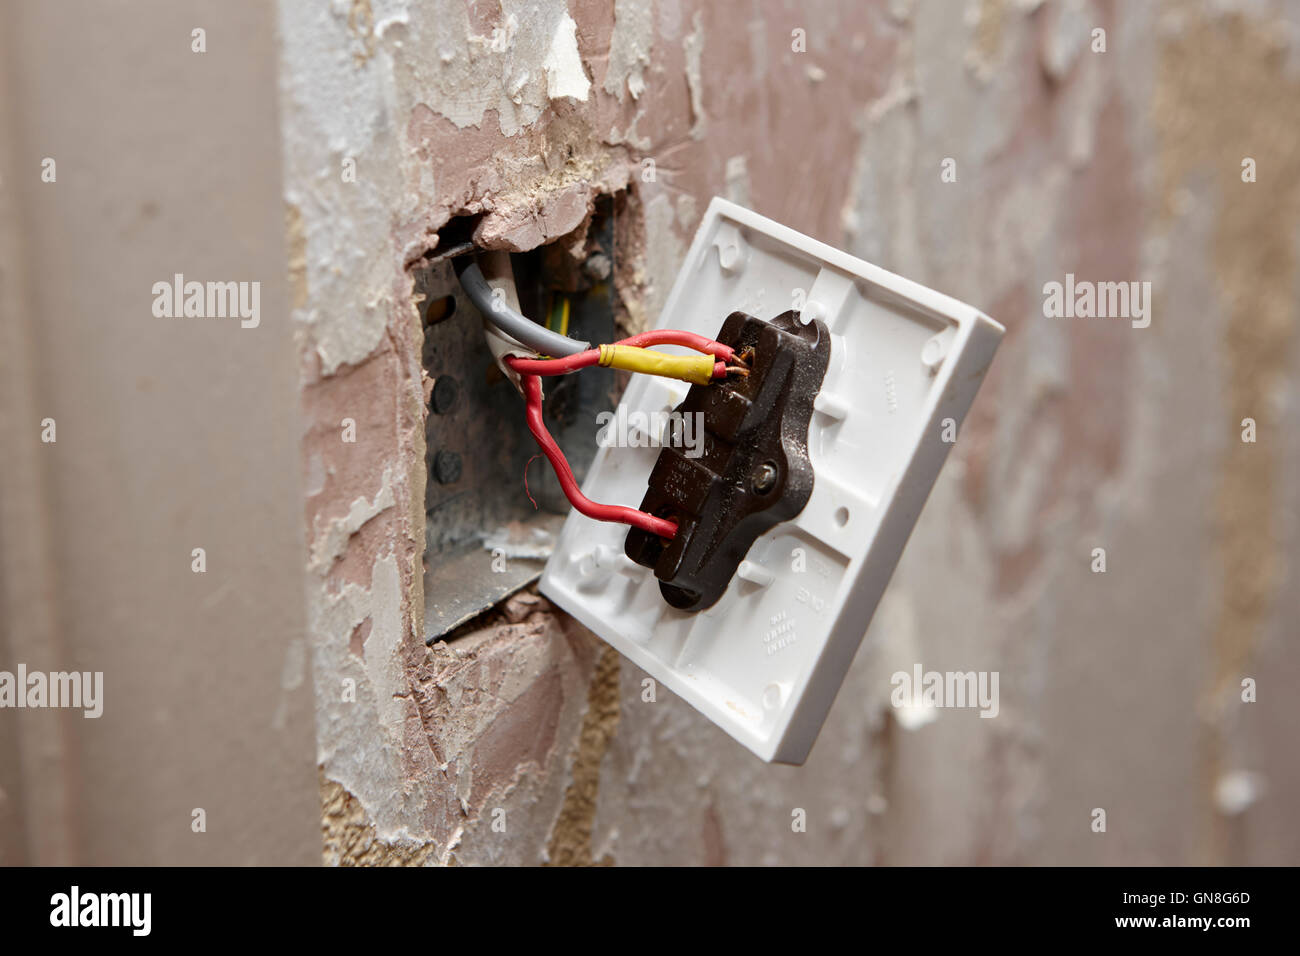 Domestic Electrical Light Switch Wiring Household Stock Photos Bare On Back Of In House Being Redecorated The Uk